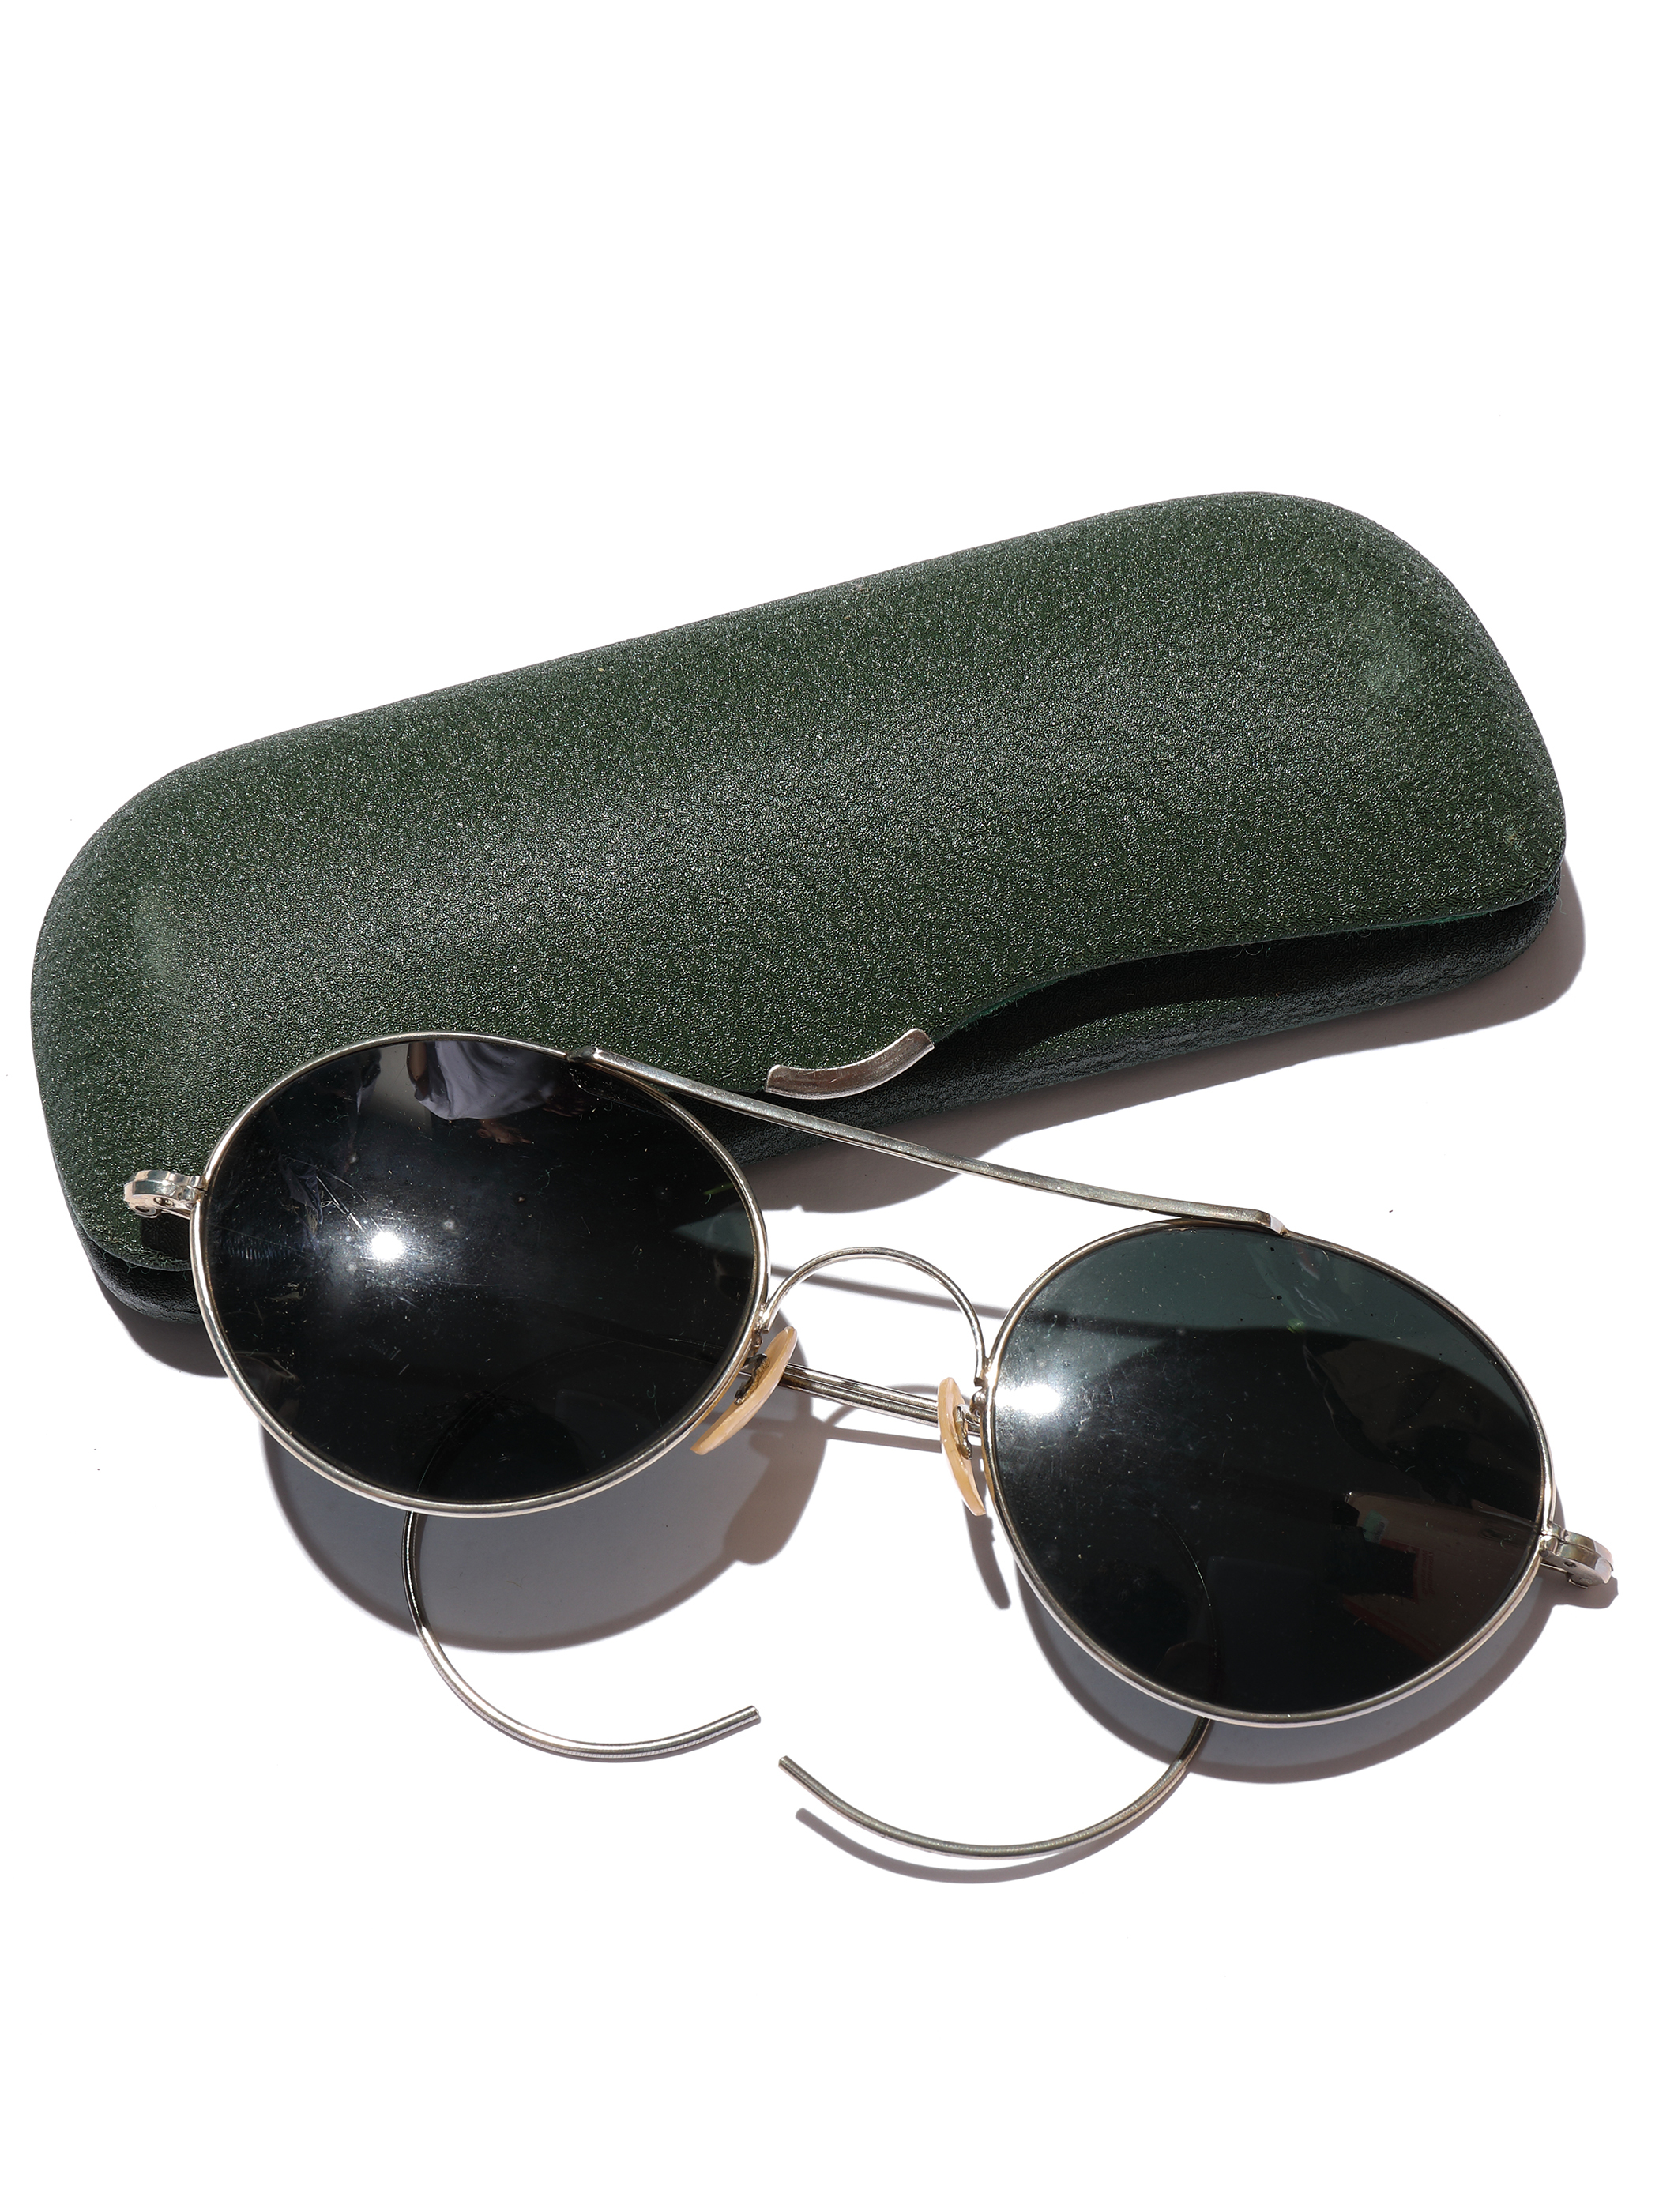 1950's French Militarty / Aviator Sunglasses